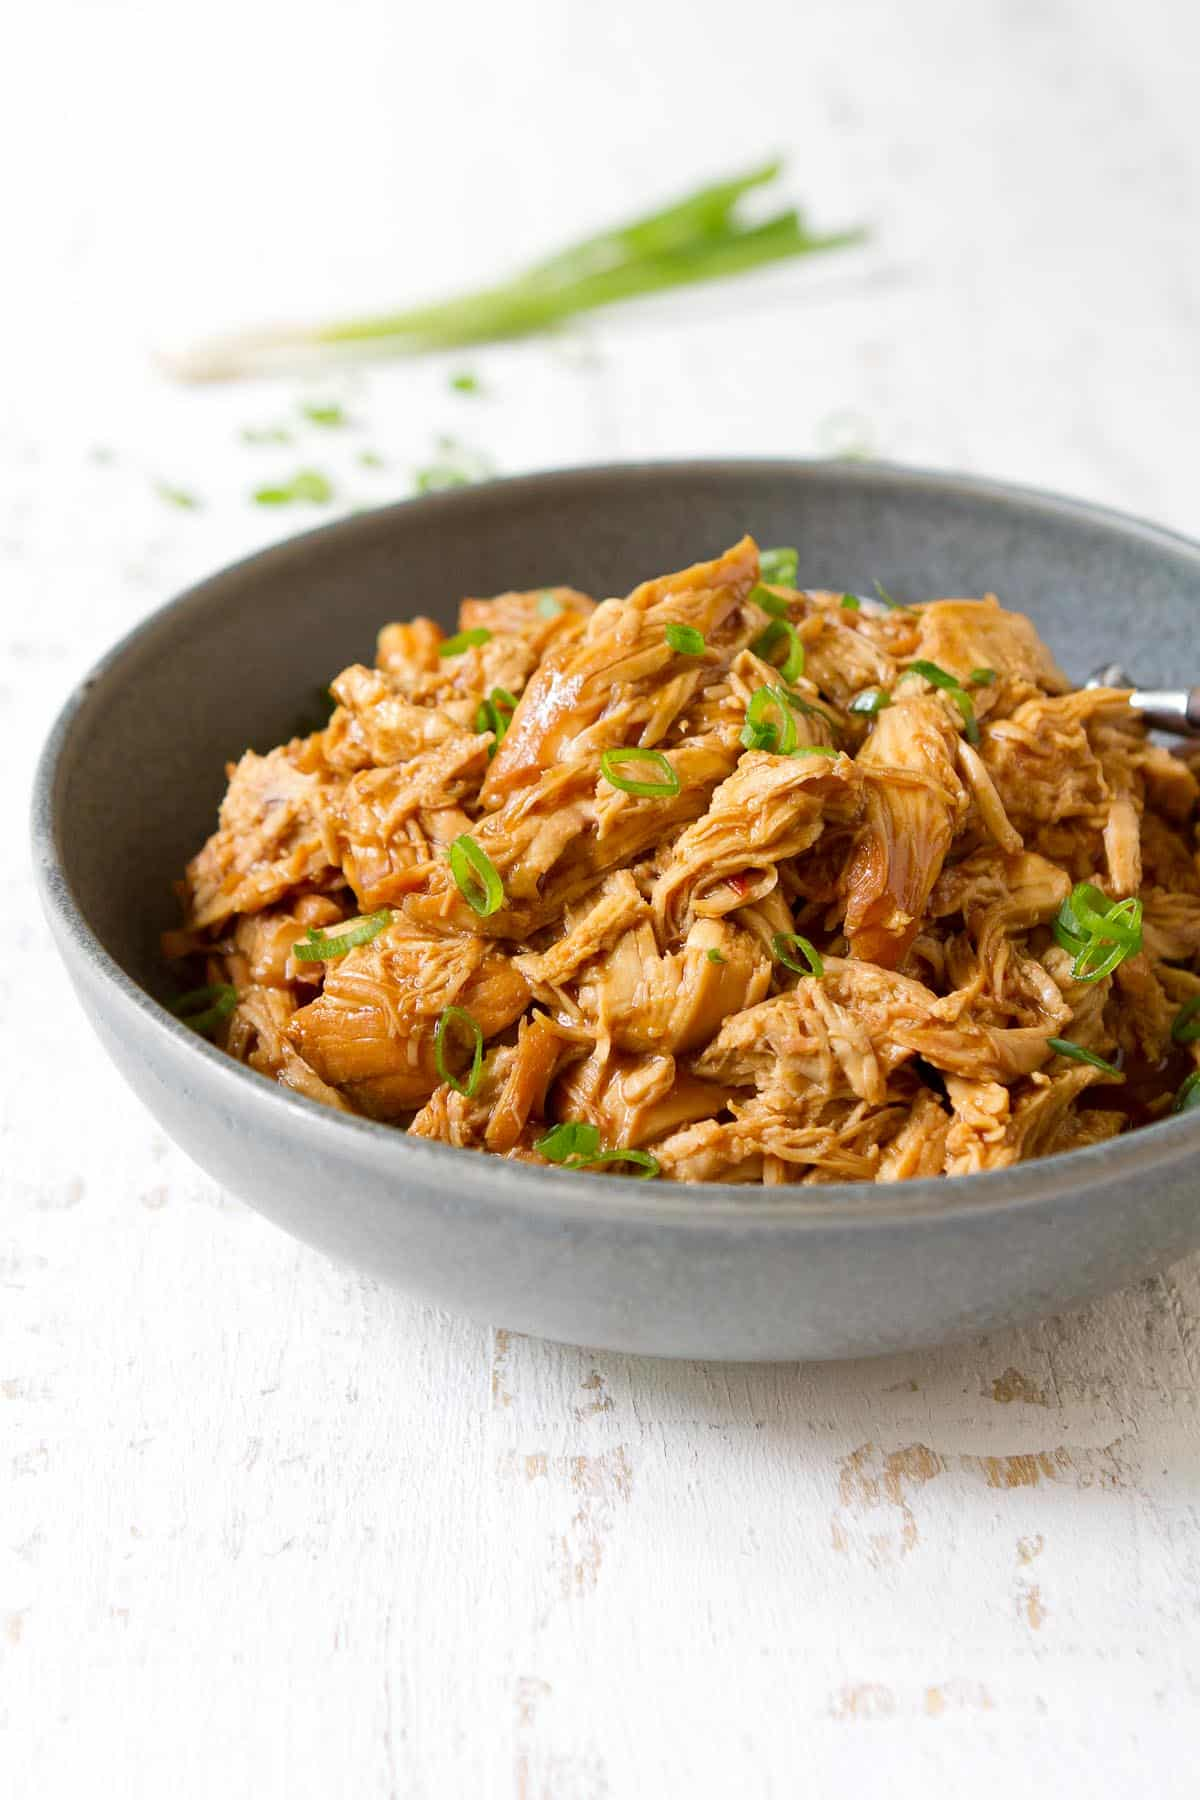 Bowl of hoisin shredded chicken, with green onions behind.